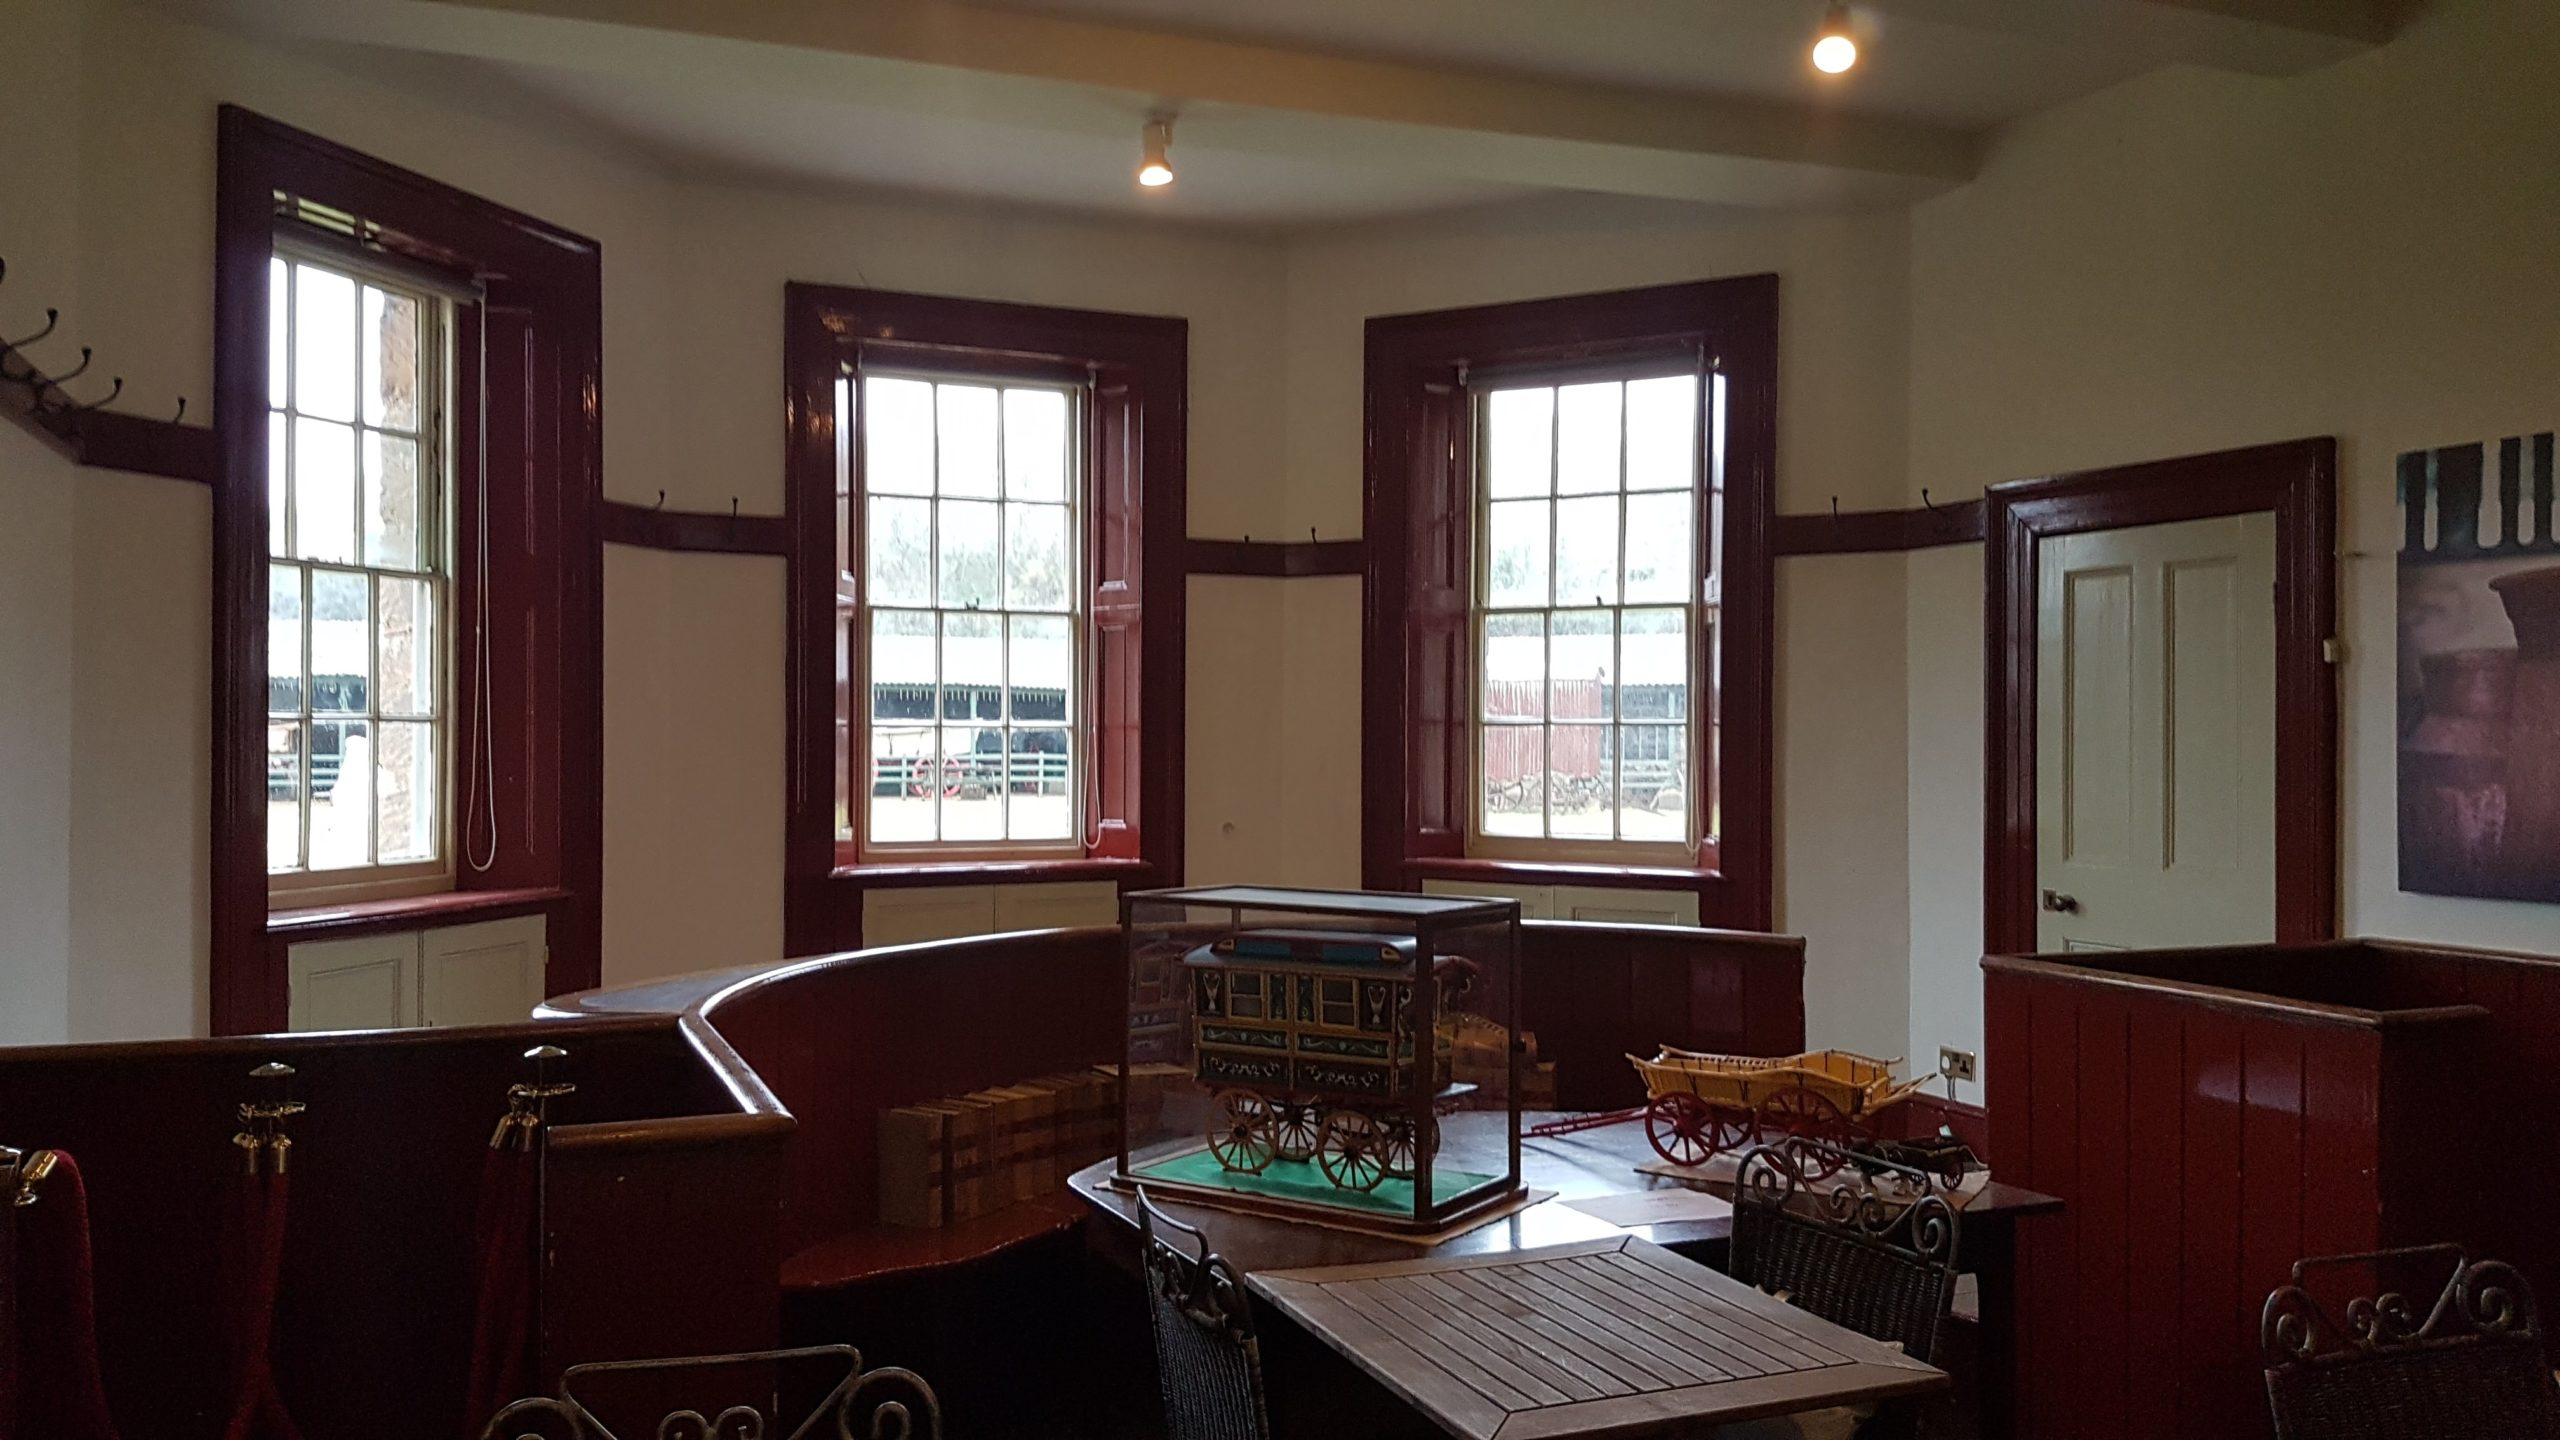 The Northleach Petty Sessions courtroom. Located in the old Keeper's House